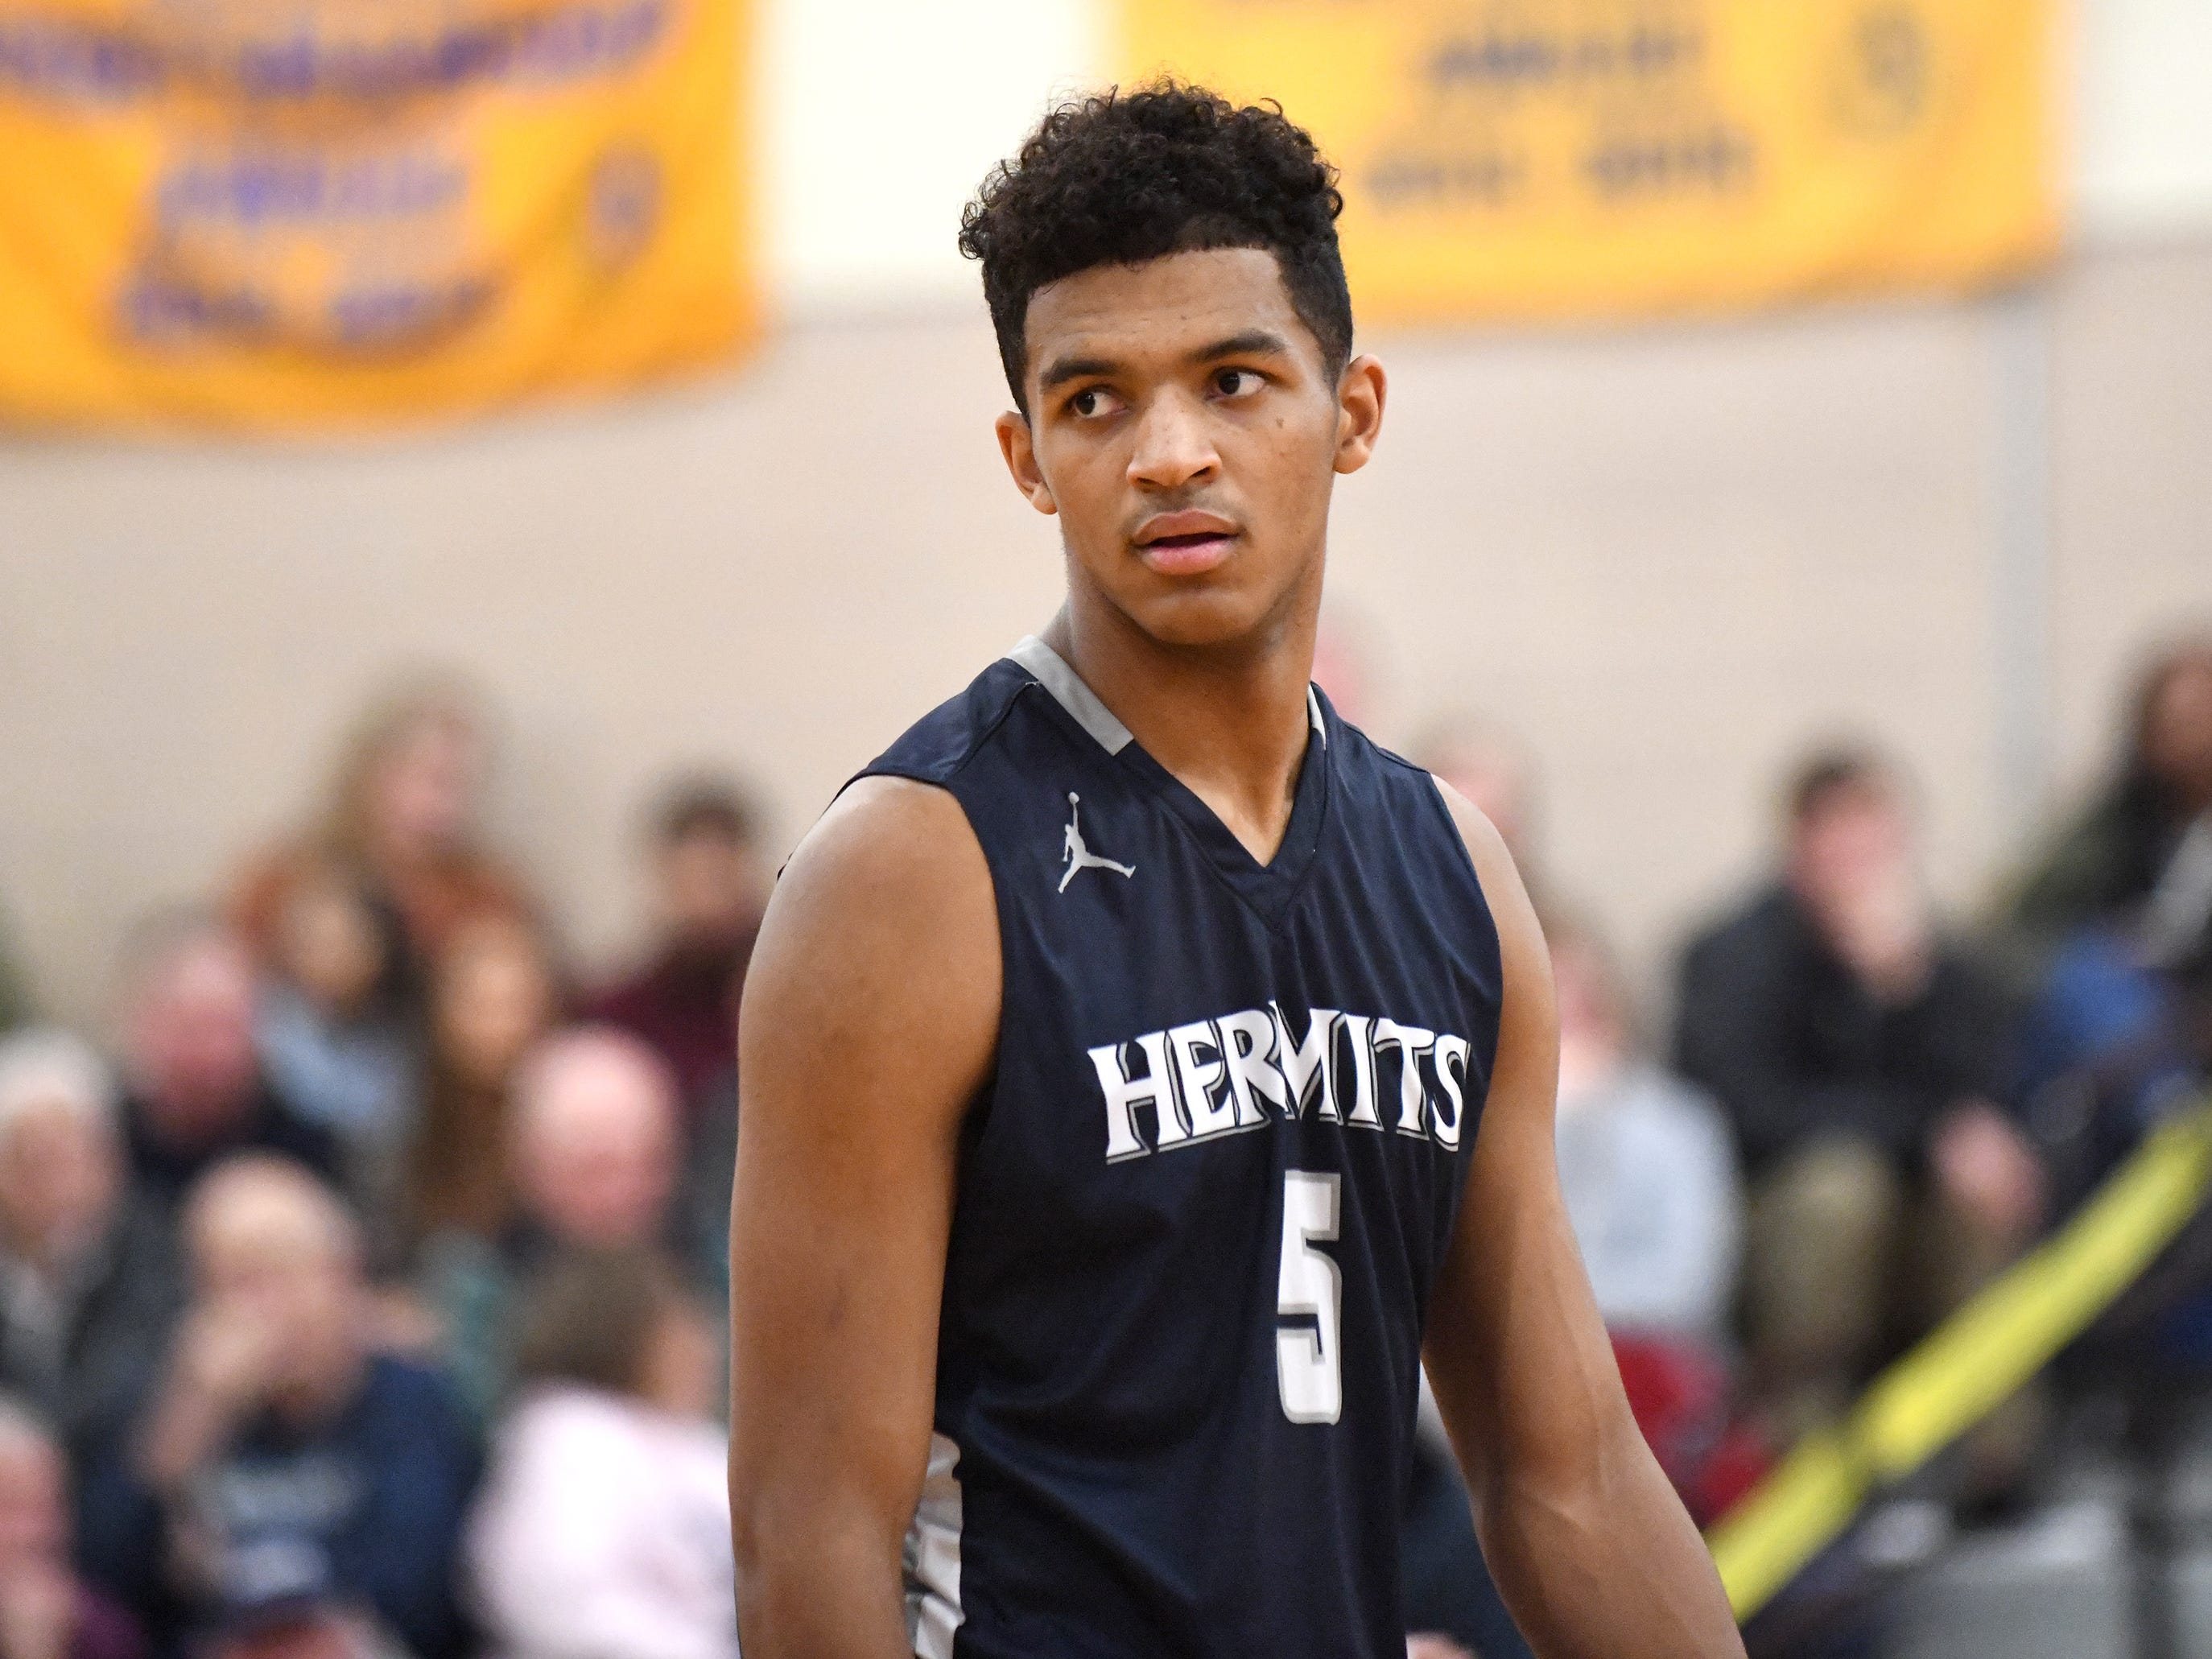 St. Augustine's Charles Solomon helped the Hermits top Millville 66-53 on Friday, Jan. 18, 2019.